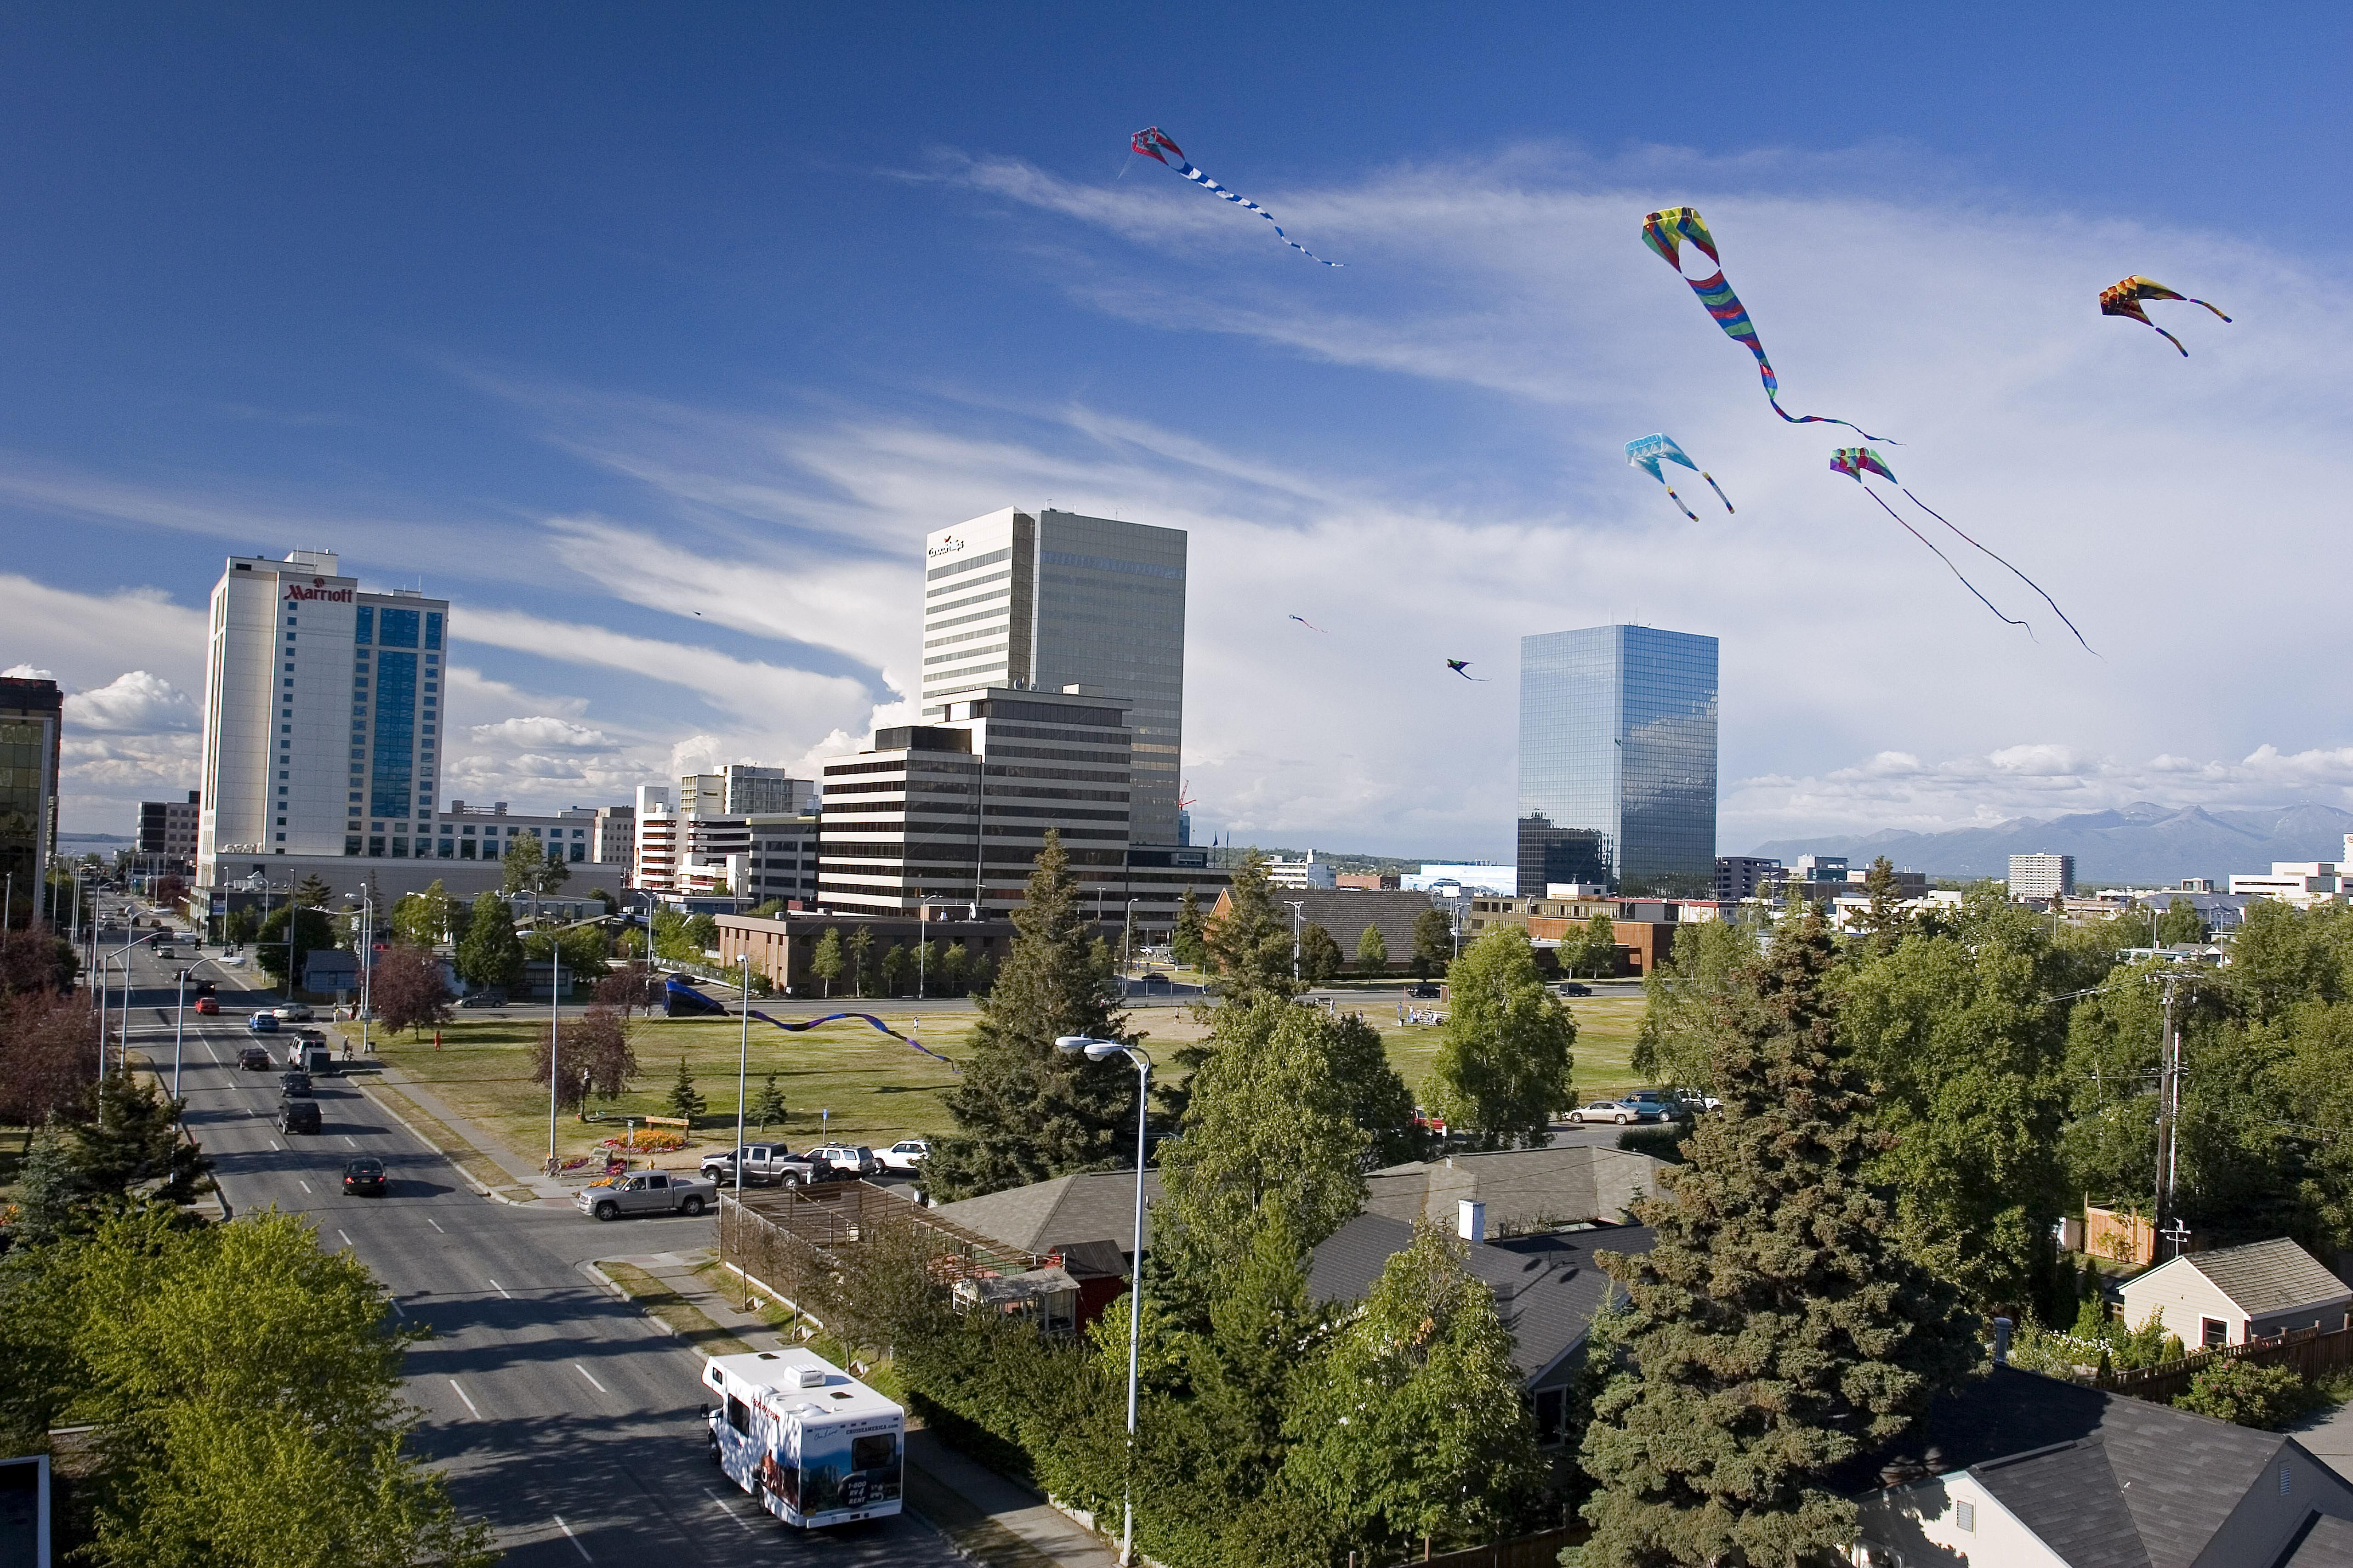 Birds-eye view of Anchorage with kites in the sky.